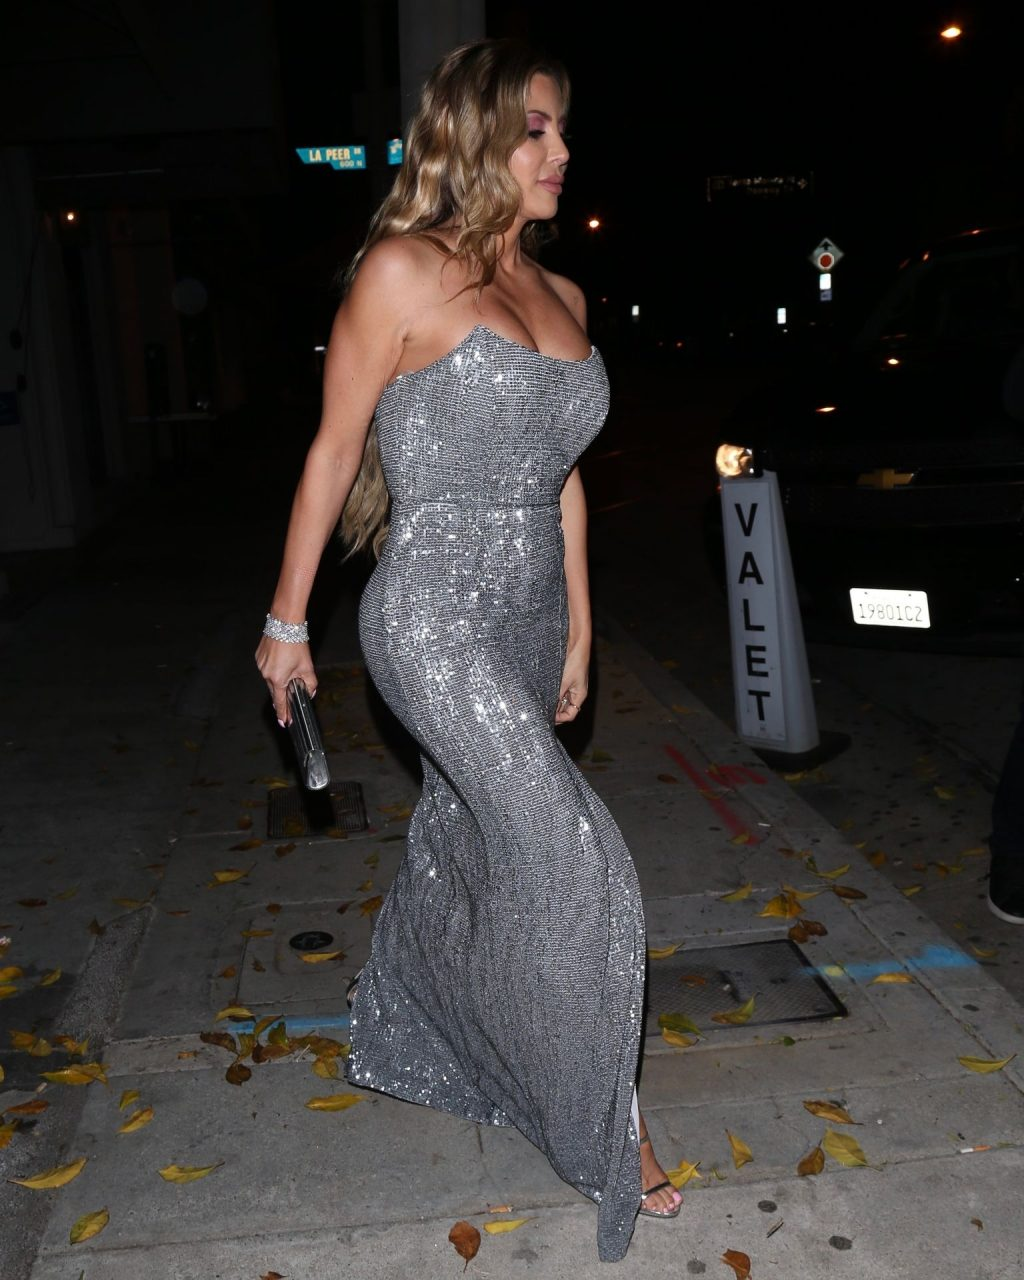 Larsa Pippen Cleavage